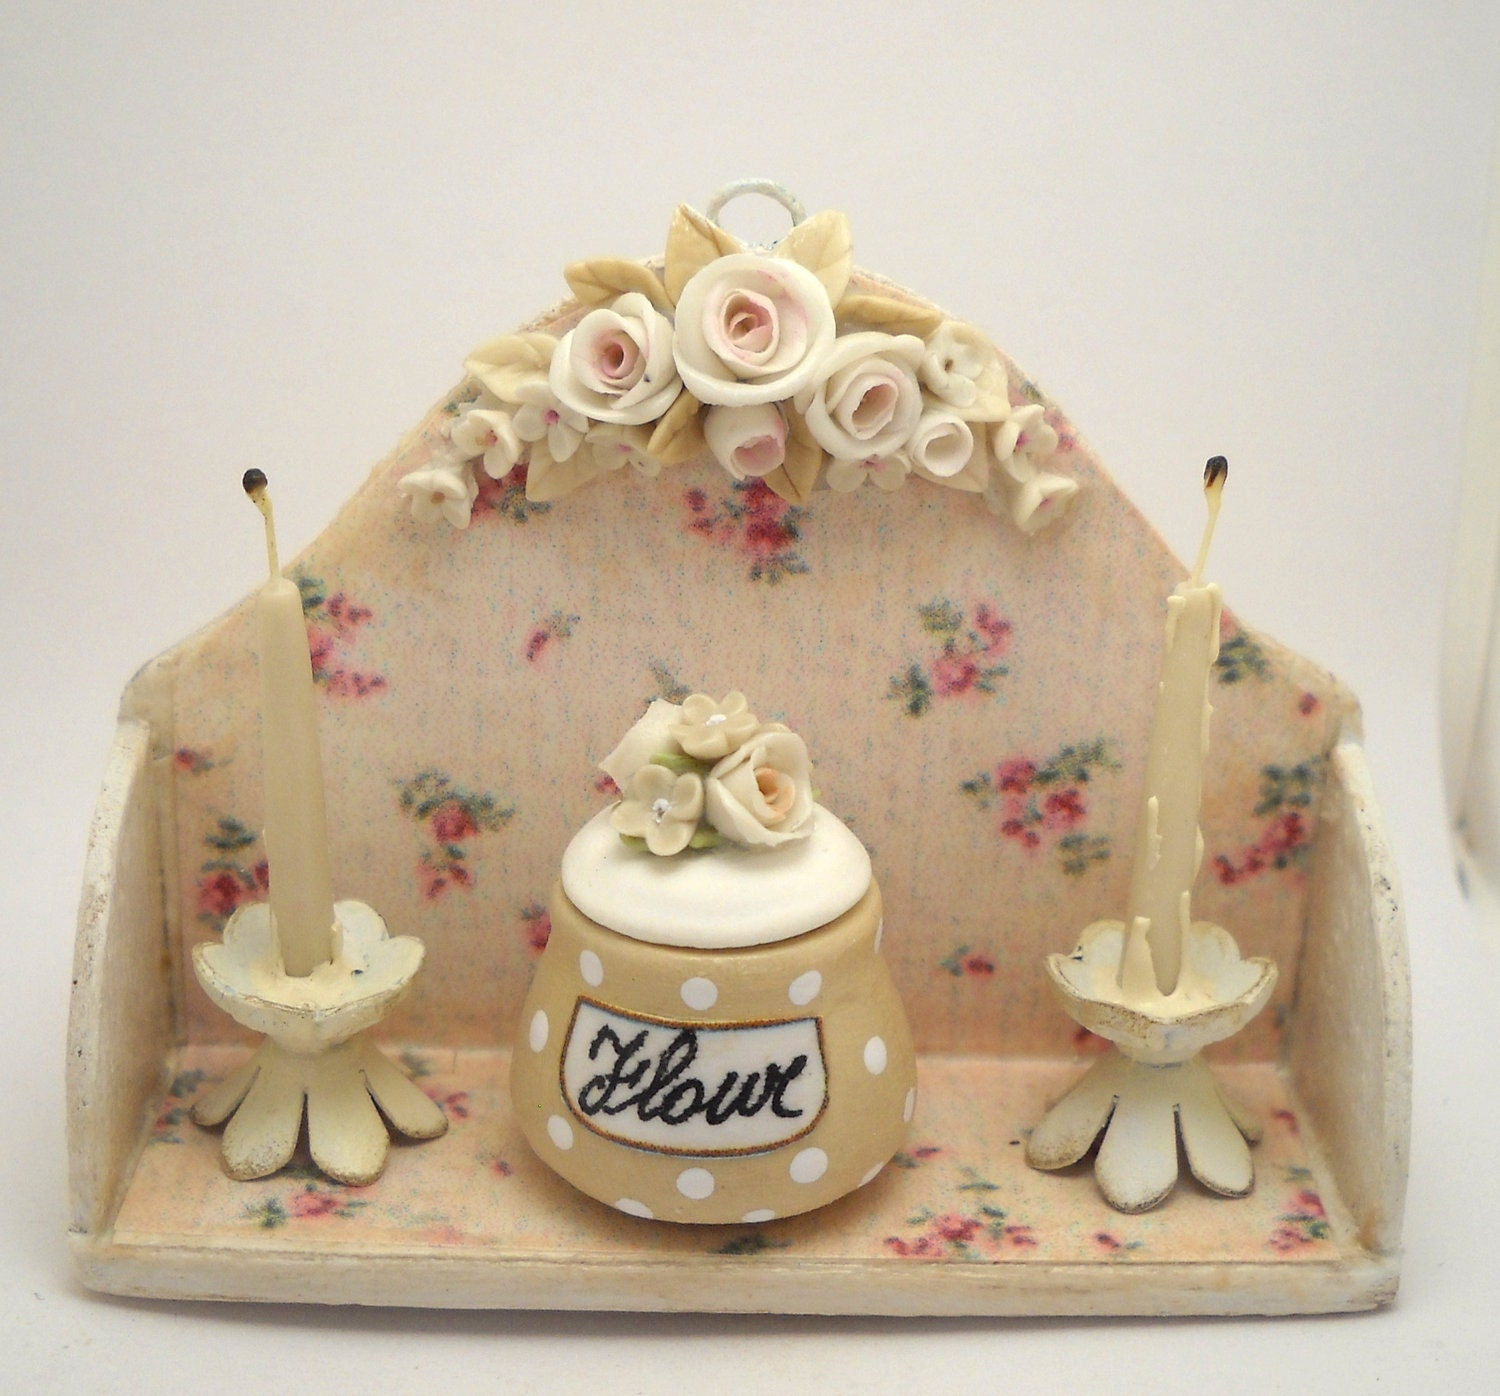 12TH scale shabby chic romantic cream roses kitchen by 64tnt